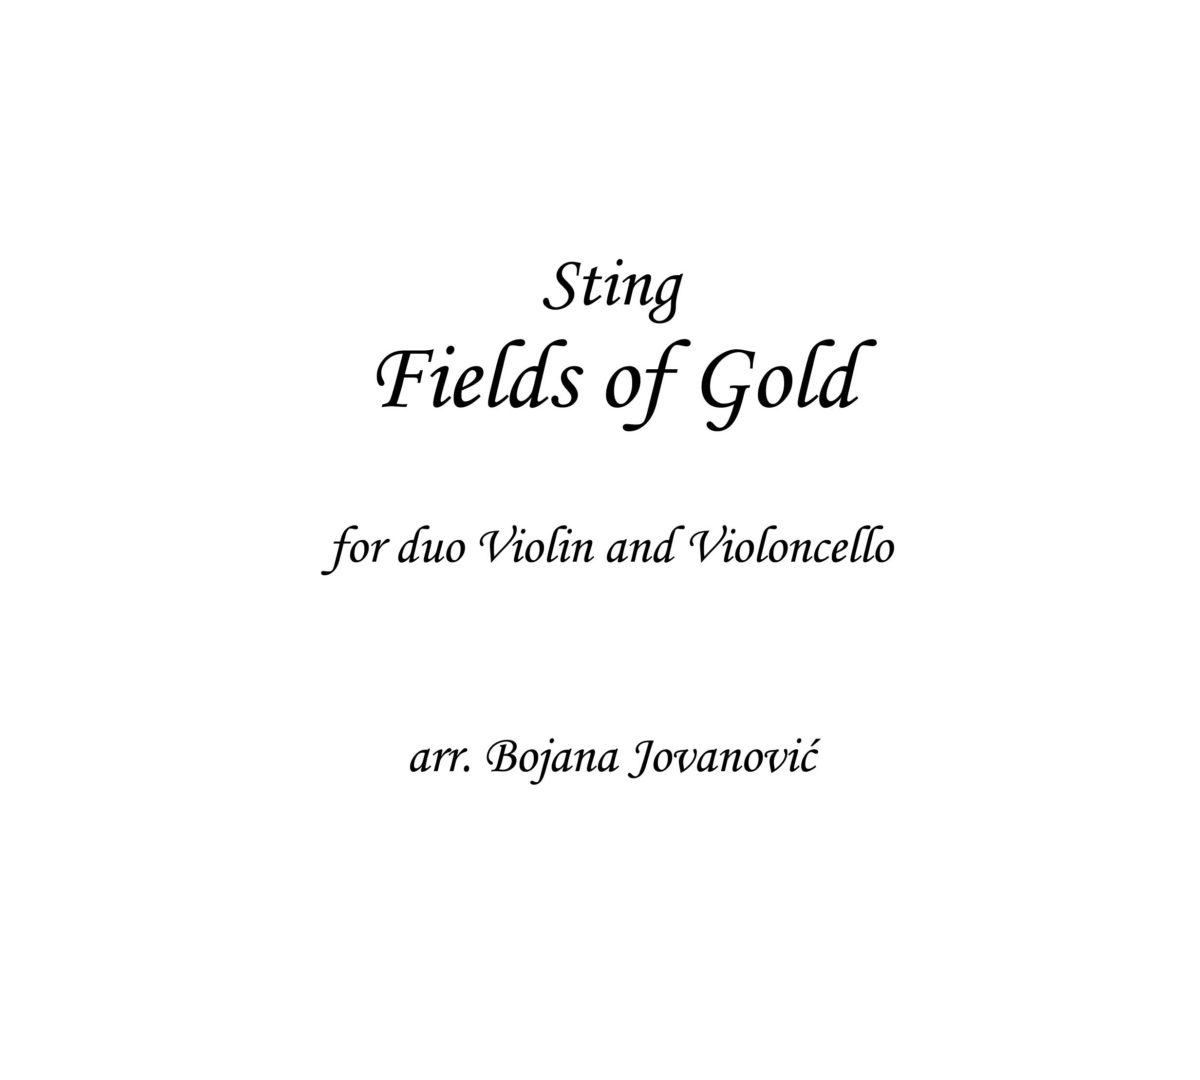 Fields of gold (Sting) - Sheet Music